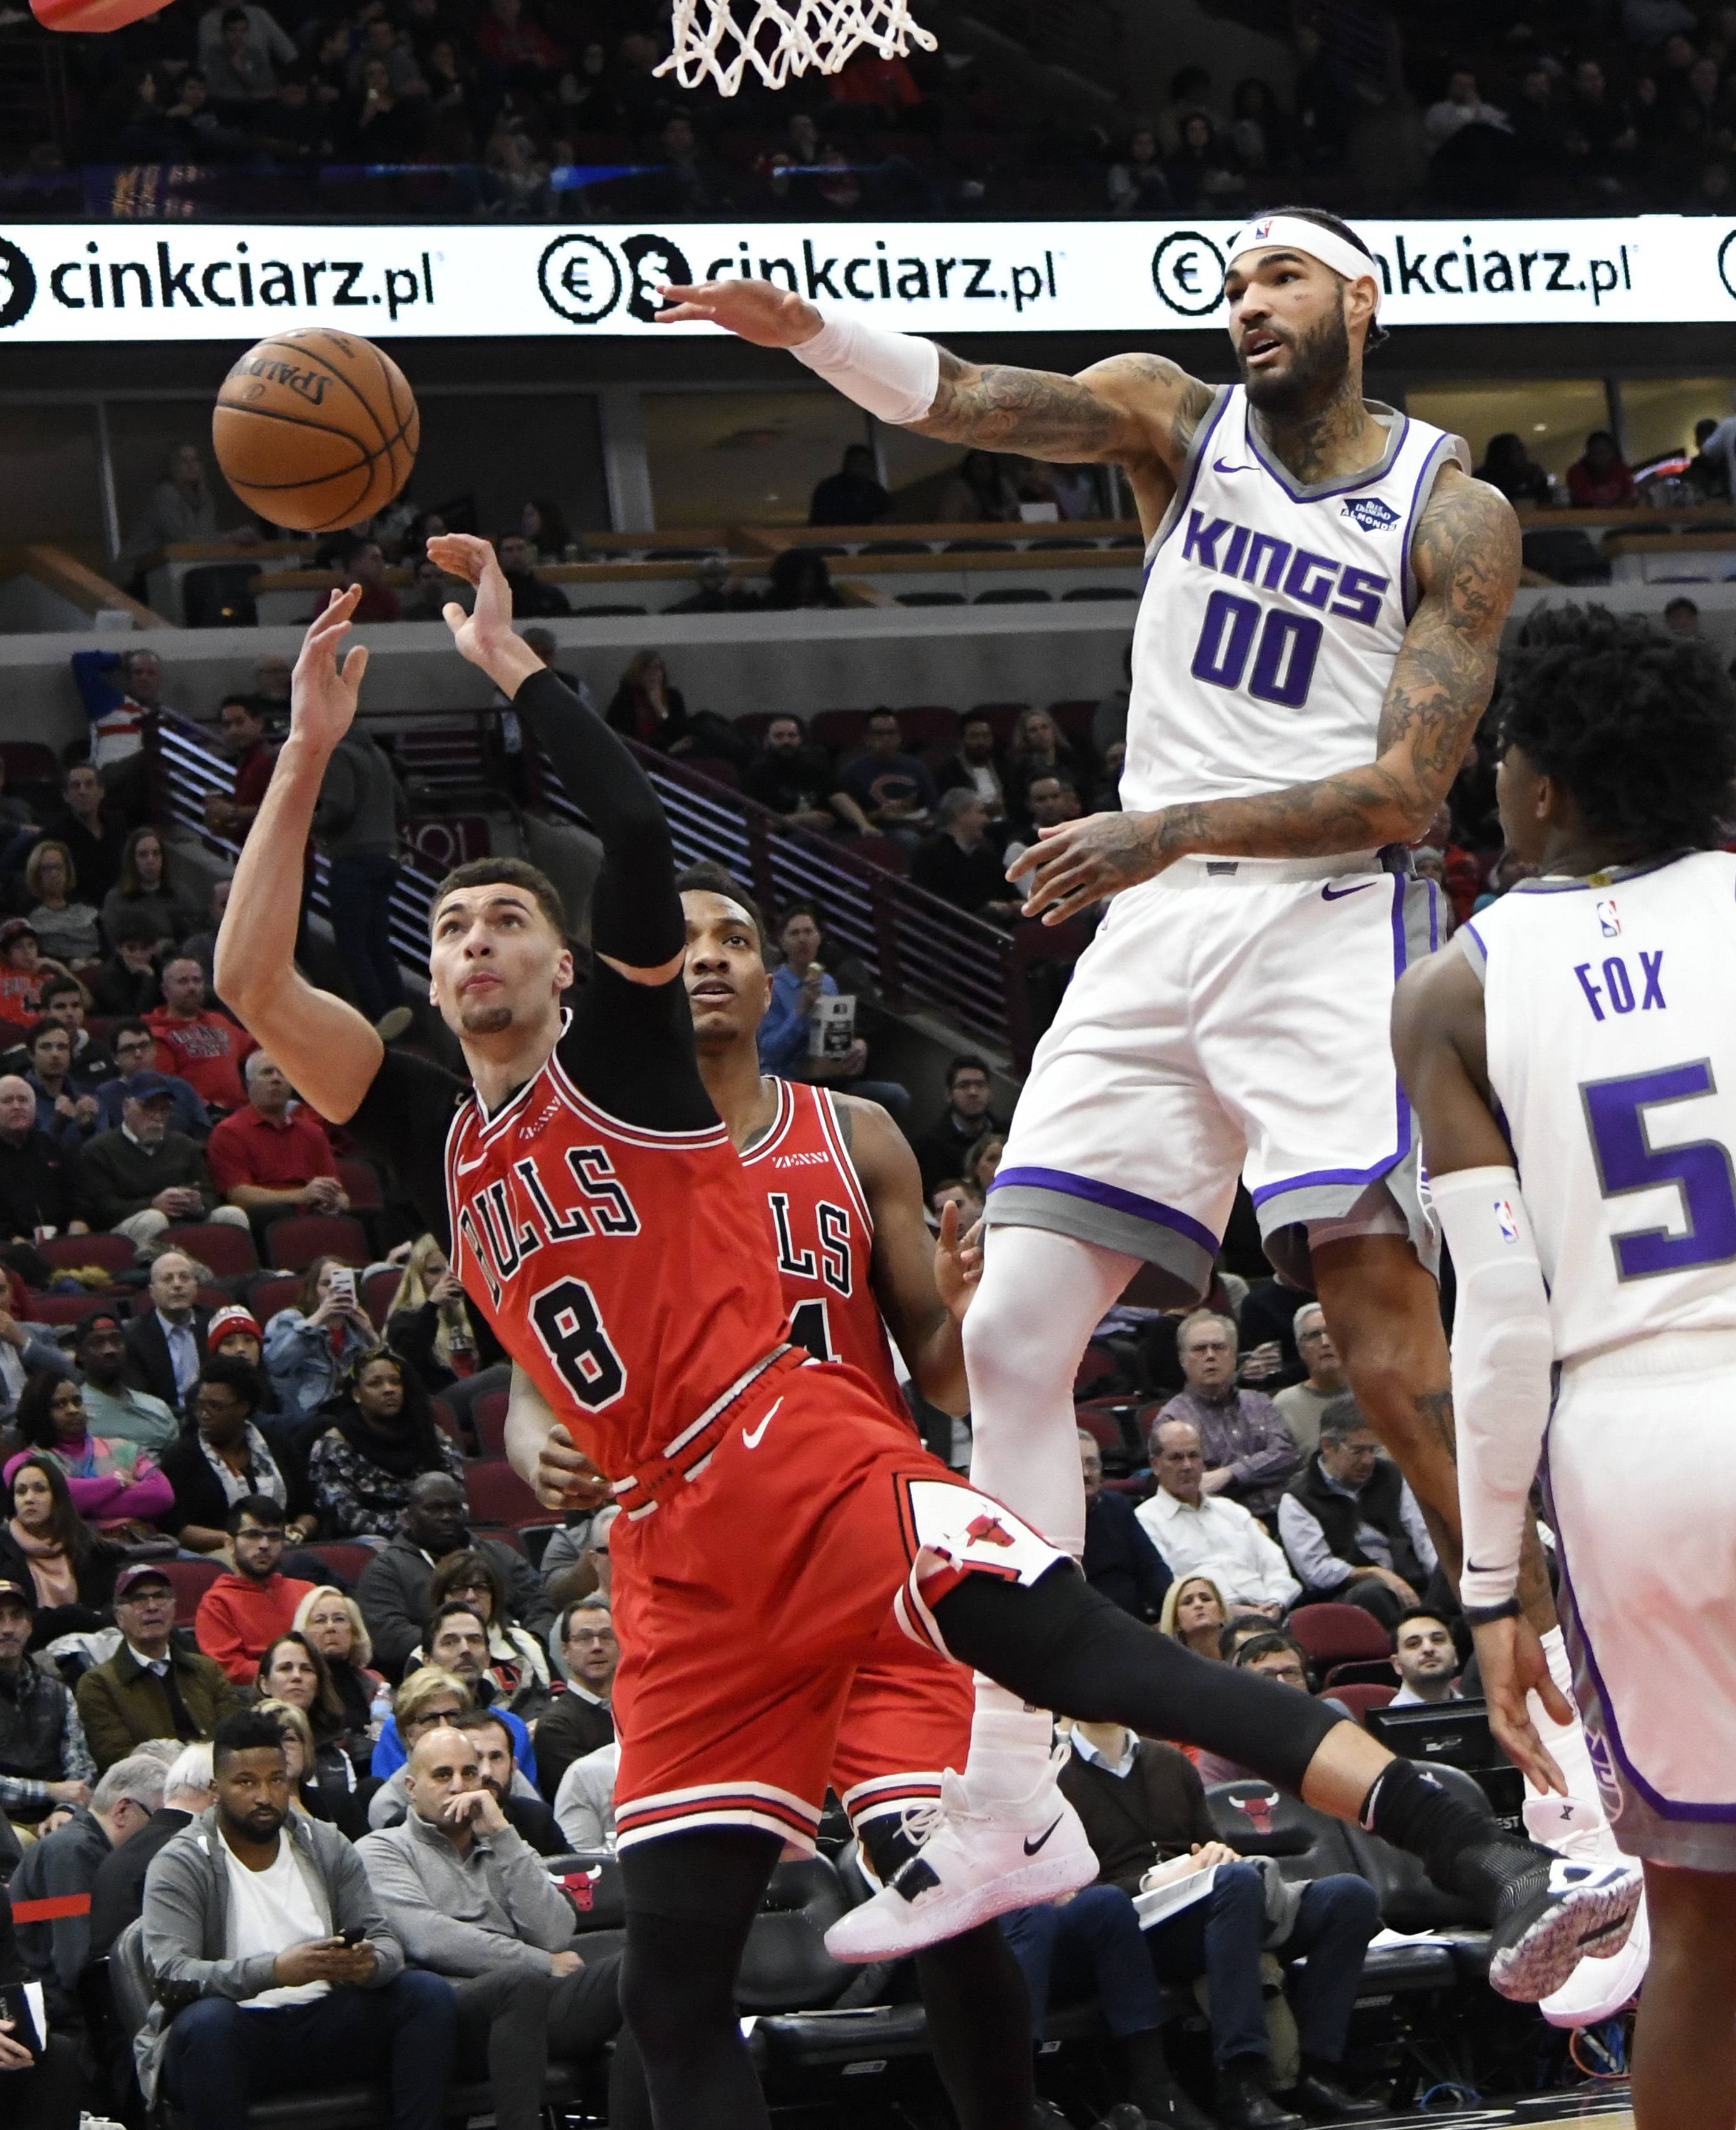 Bulls guard Zach LaVine (8) is defended by Sacramento Kings center Willie Cauley-Stein (00) during the second half Monday at the United Center. LaVine led the Bulls with 19 points.